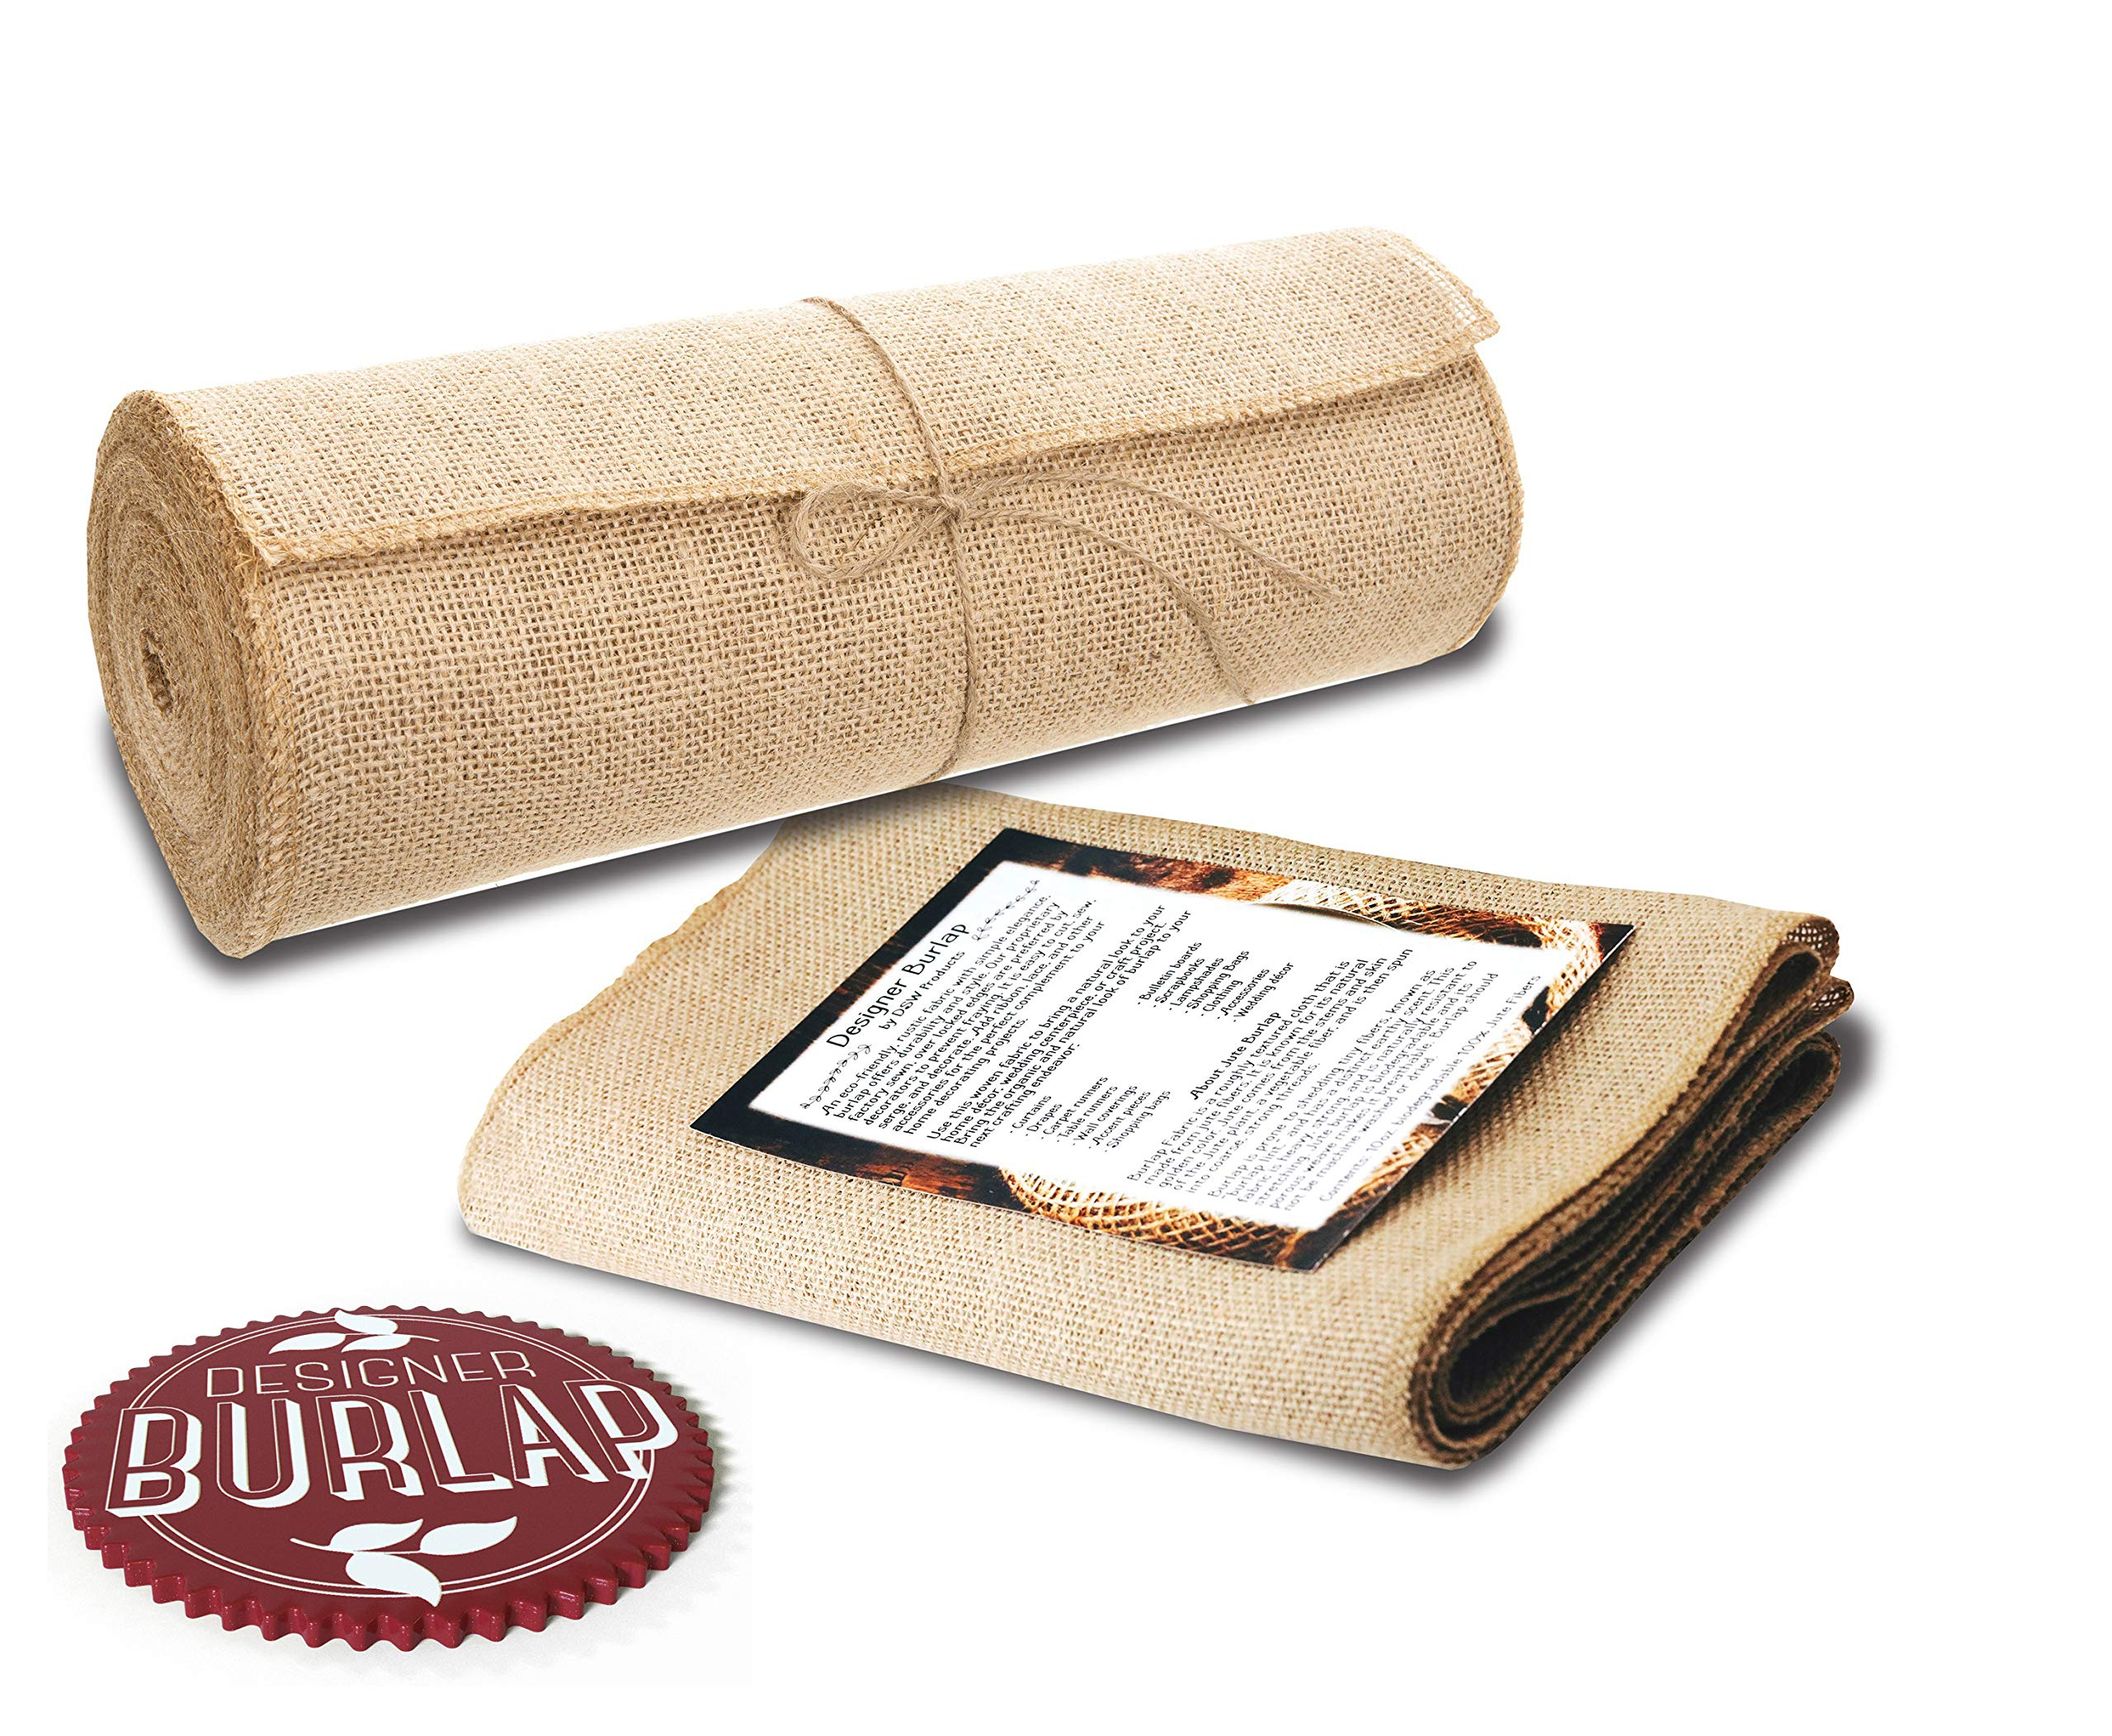 Burlap Table Runners - 12 Inch Wide X 10 Yards Long Burlap Roll - Burlap Fabric Rolls. A No-Fray Burlap Runner with Overlocked and Sewn Edges for Rustic Weddings, Decorations and Crafts! by Designer Burlap